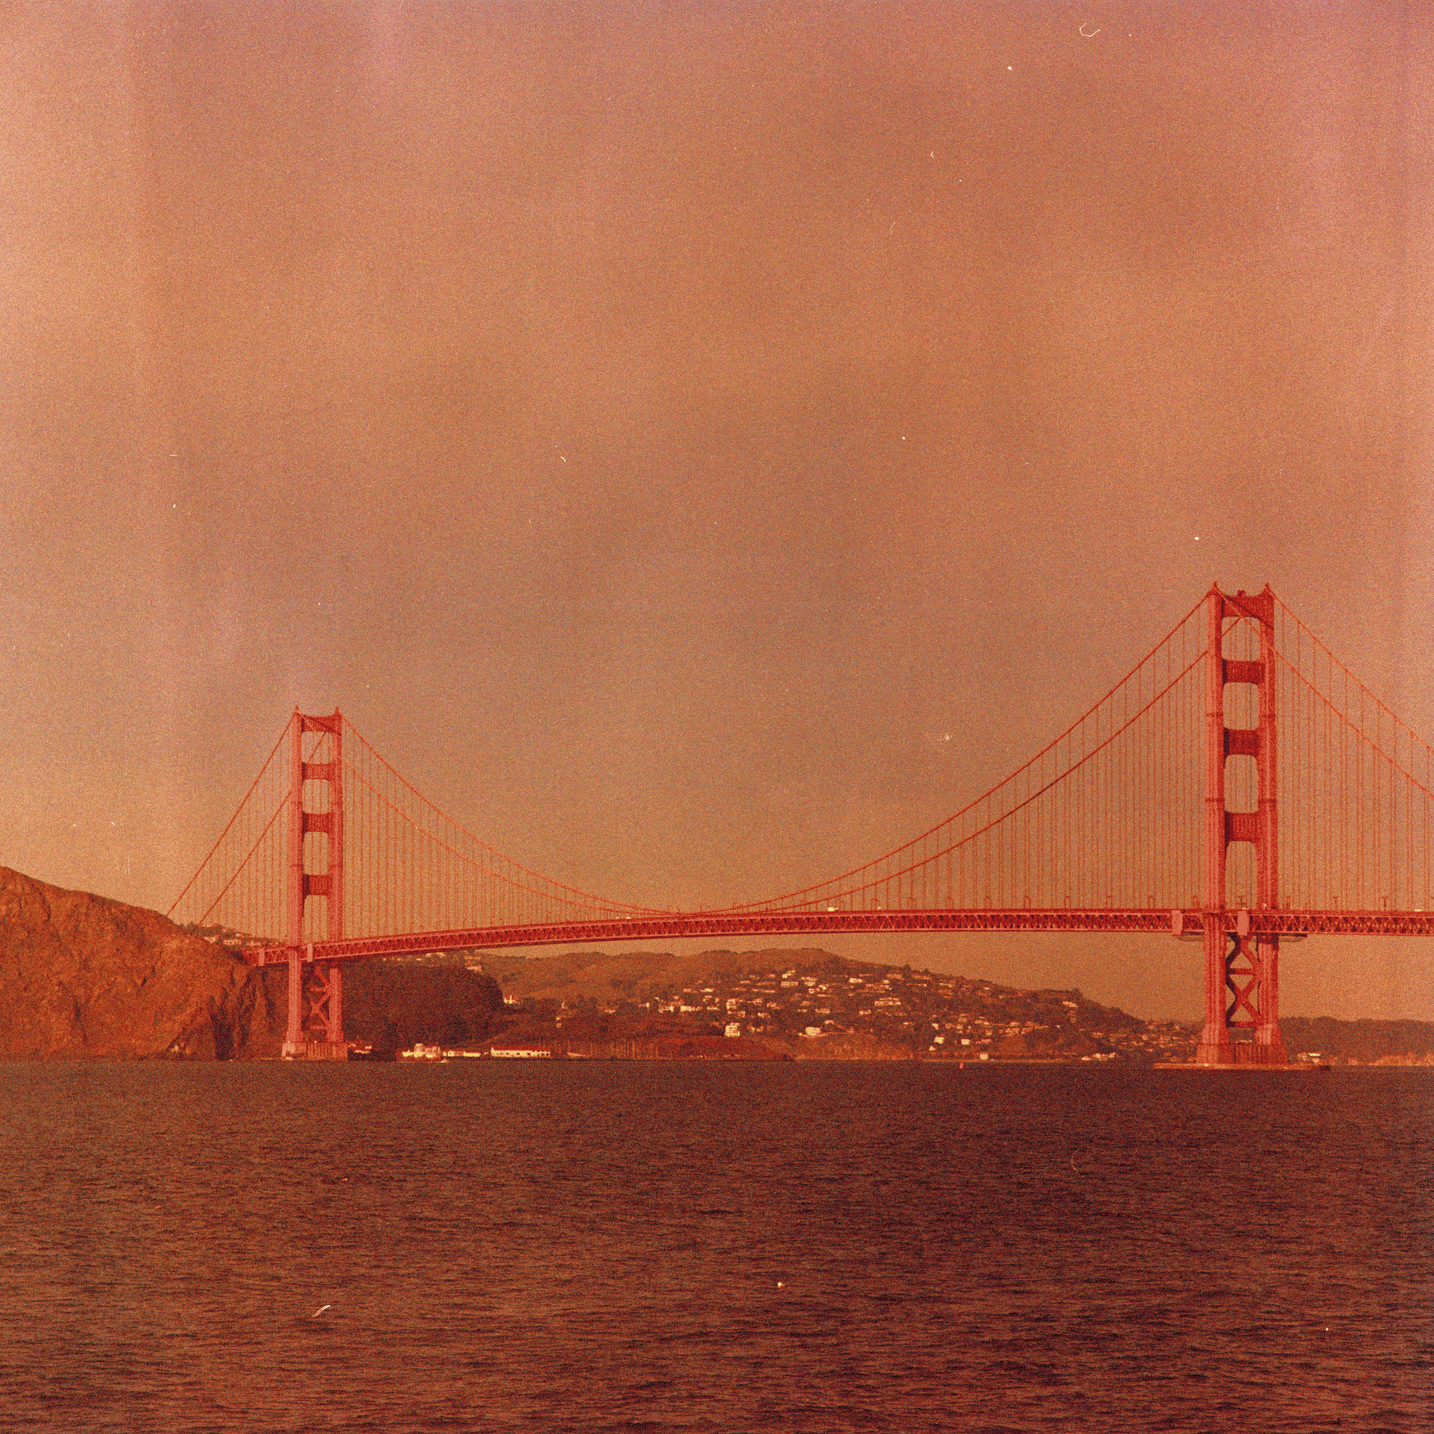 photographic film, Golden Gate Bridge, San Francisco